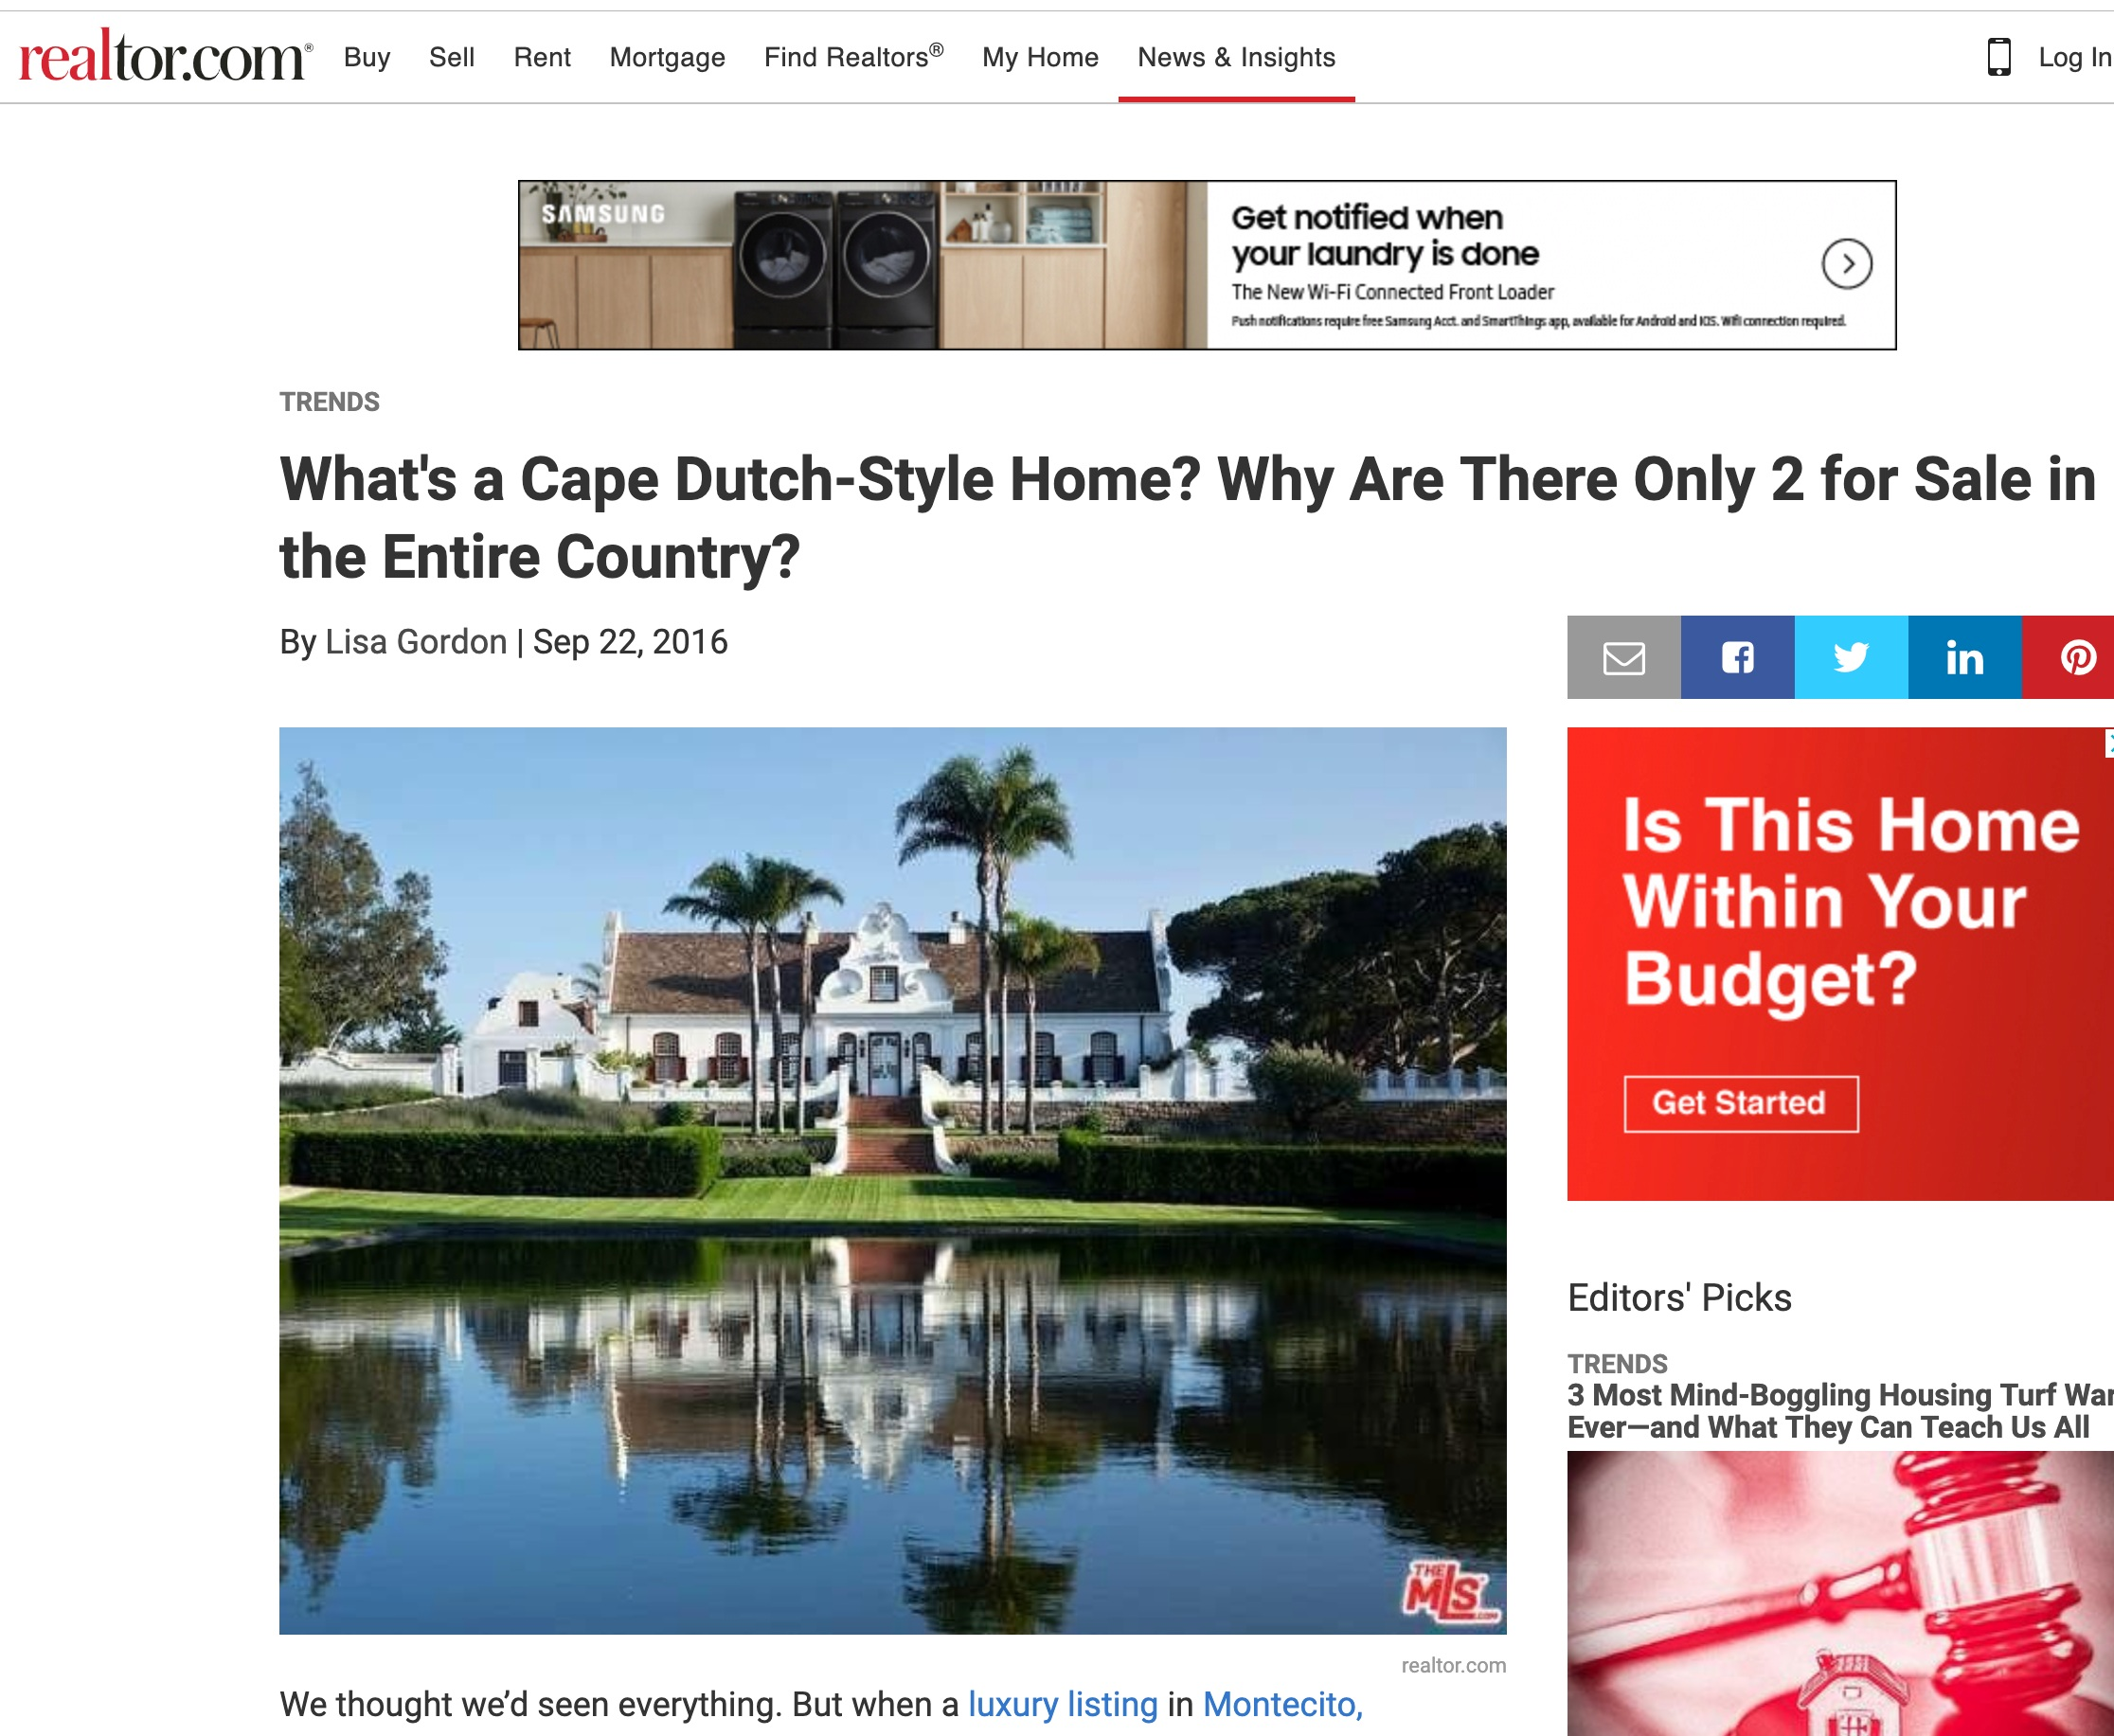 What's a Cape Dutch-Style Home? Why Are There Only 2 for Sale in the Entire Country?  September 22, 2016 - Realtor.com